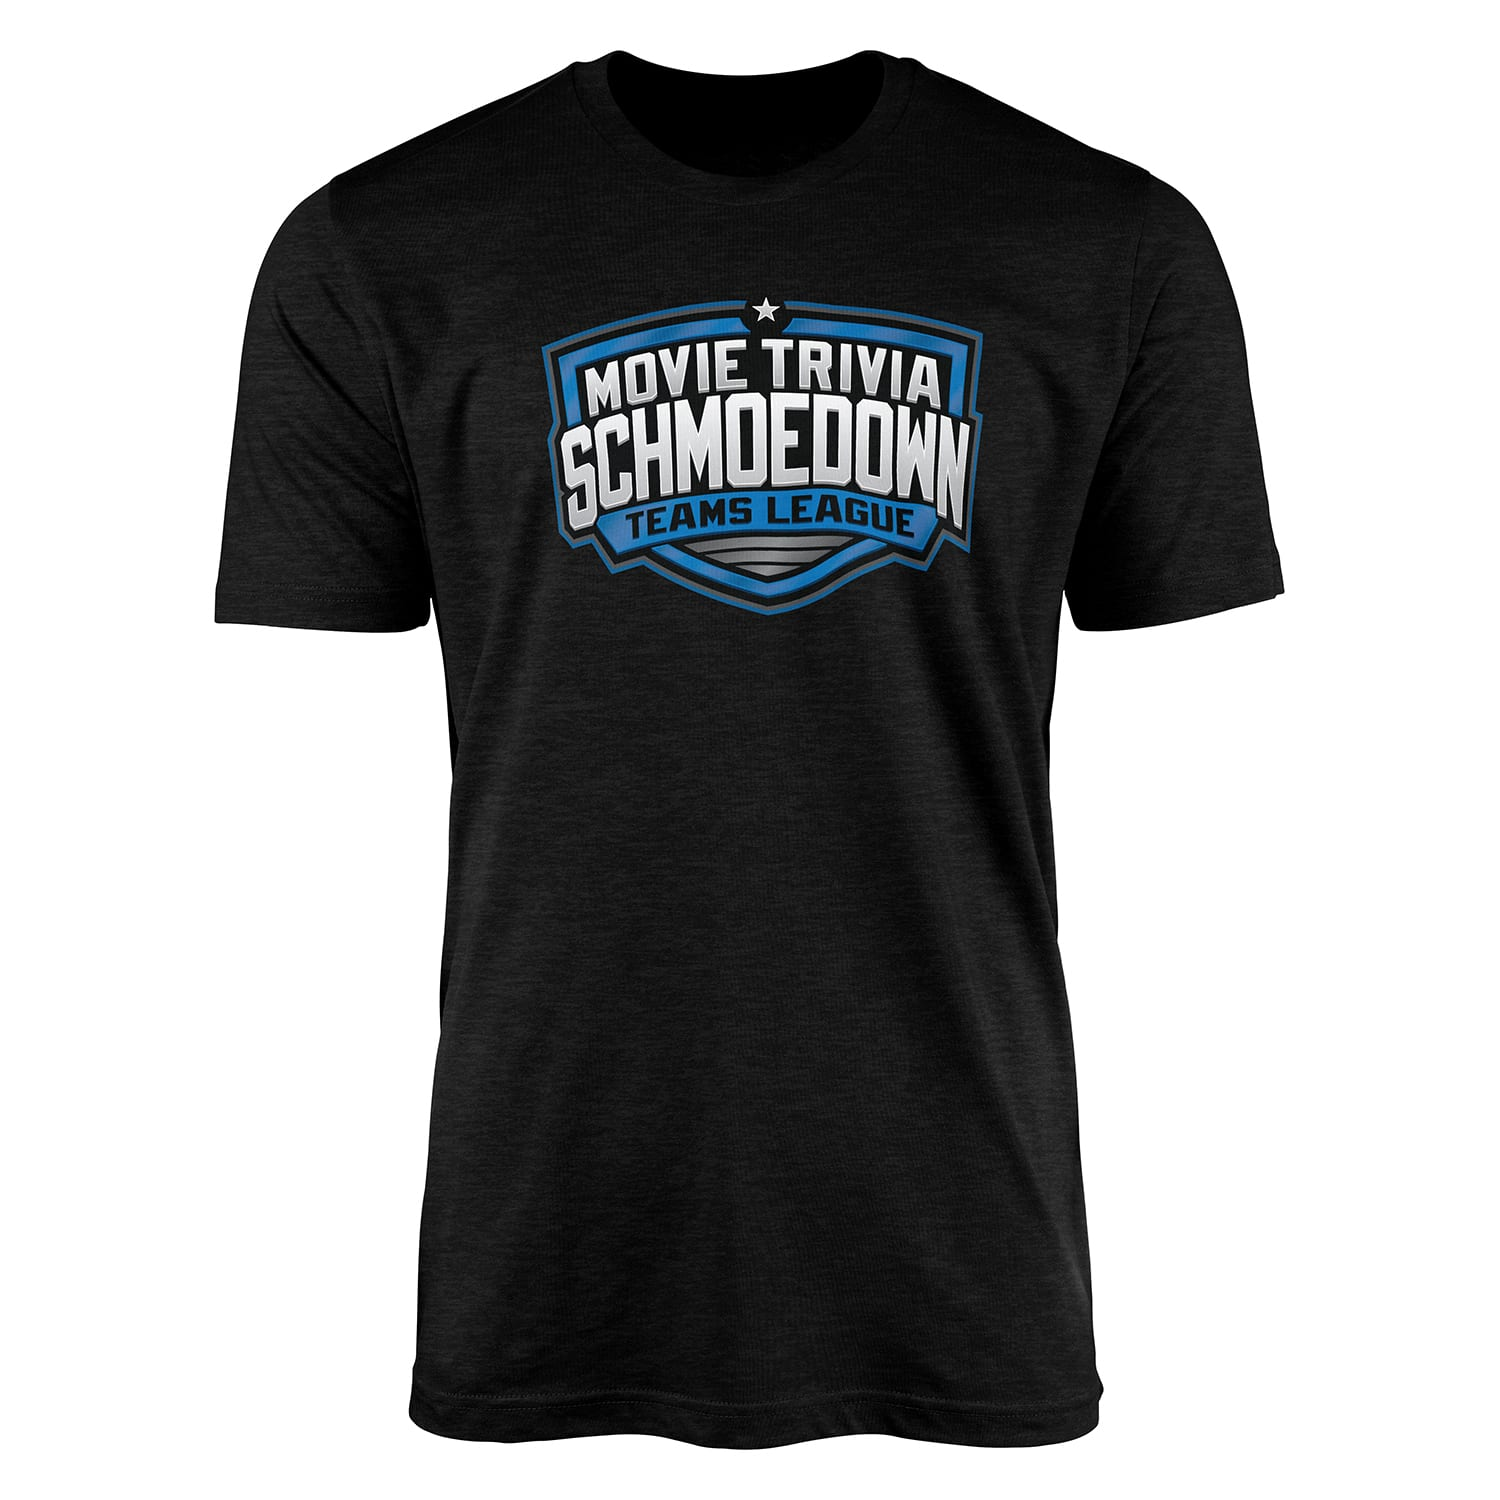 "Movie Trivia Schmoedown ""Teams League"" - T-Shirt"